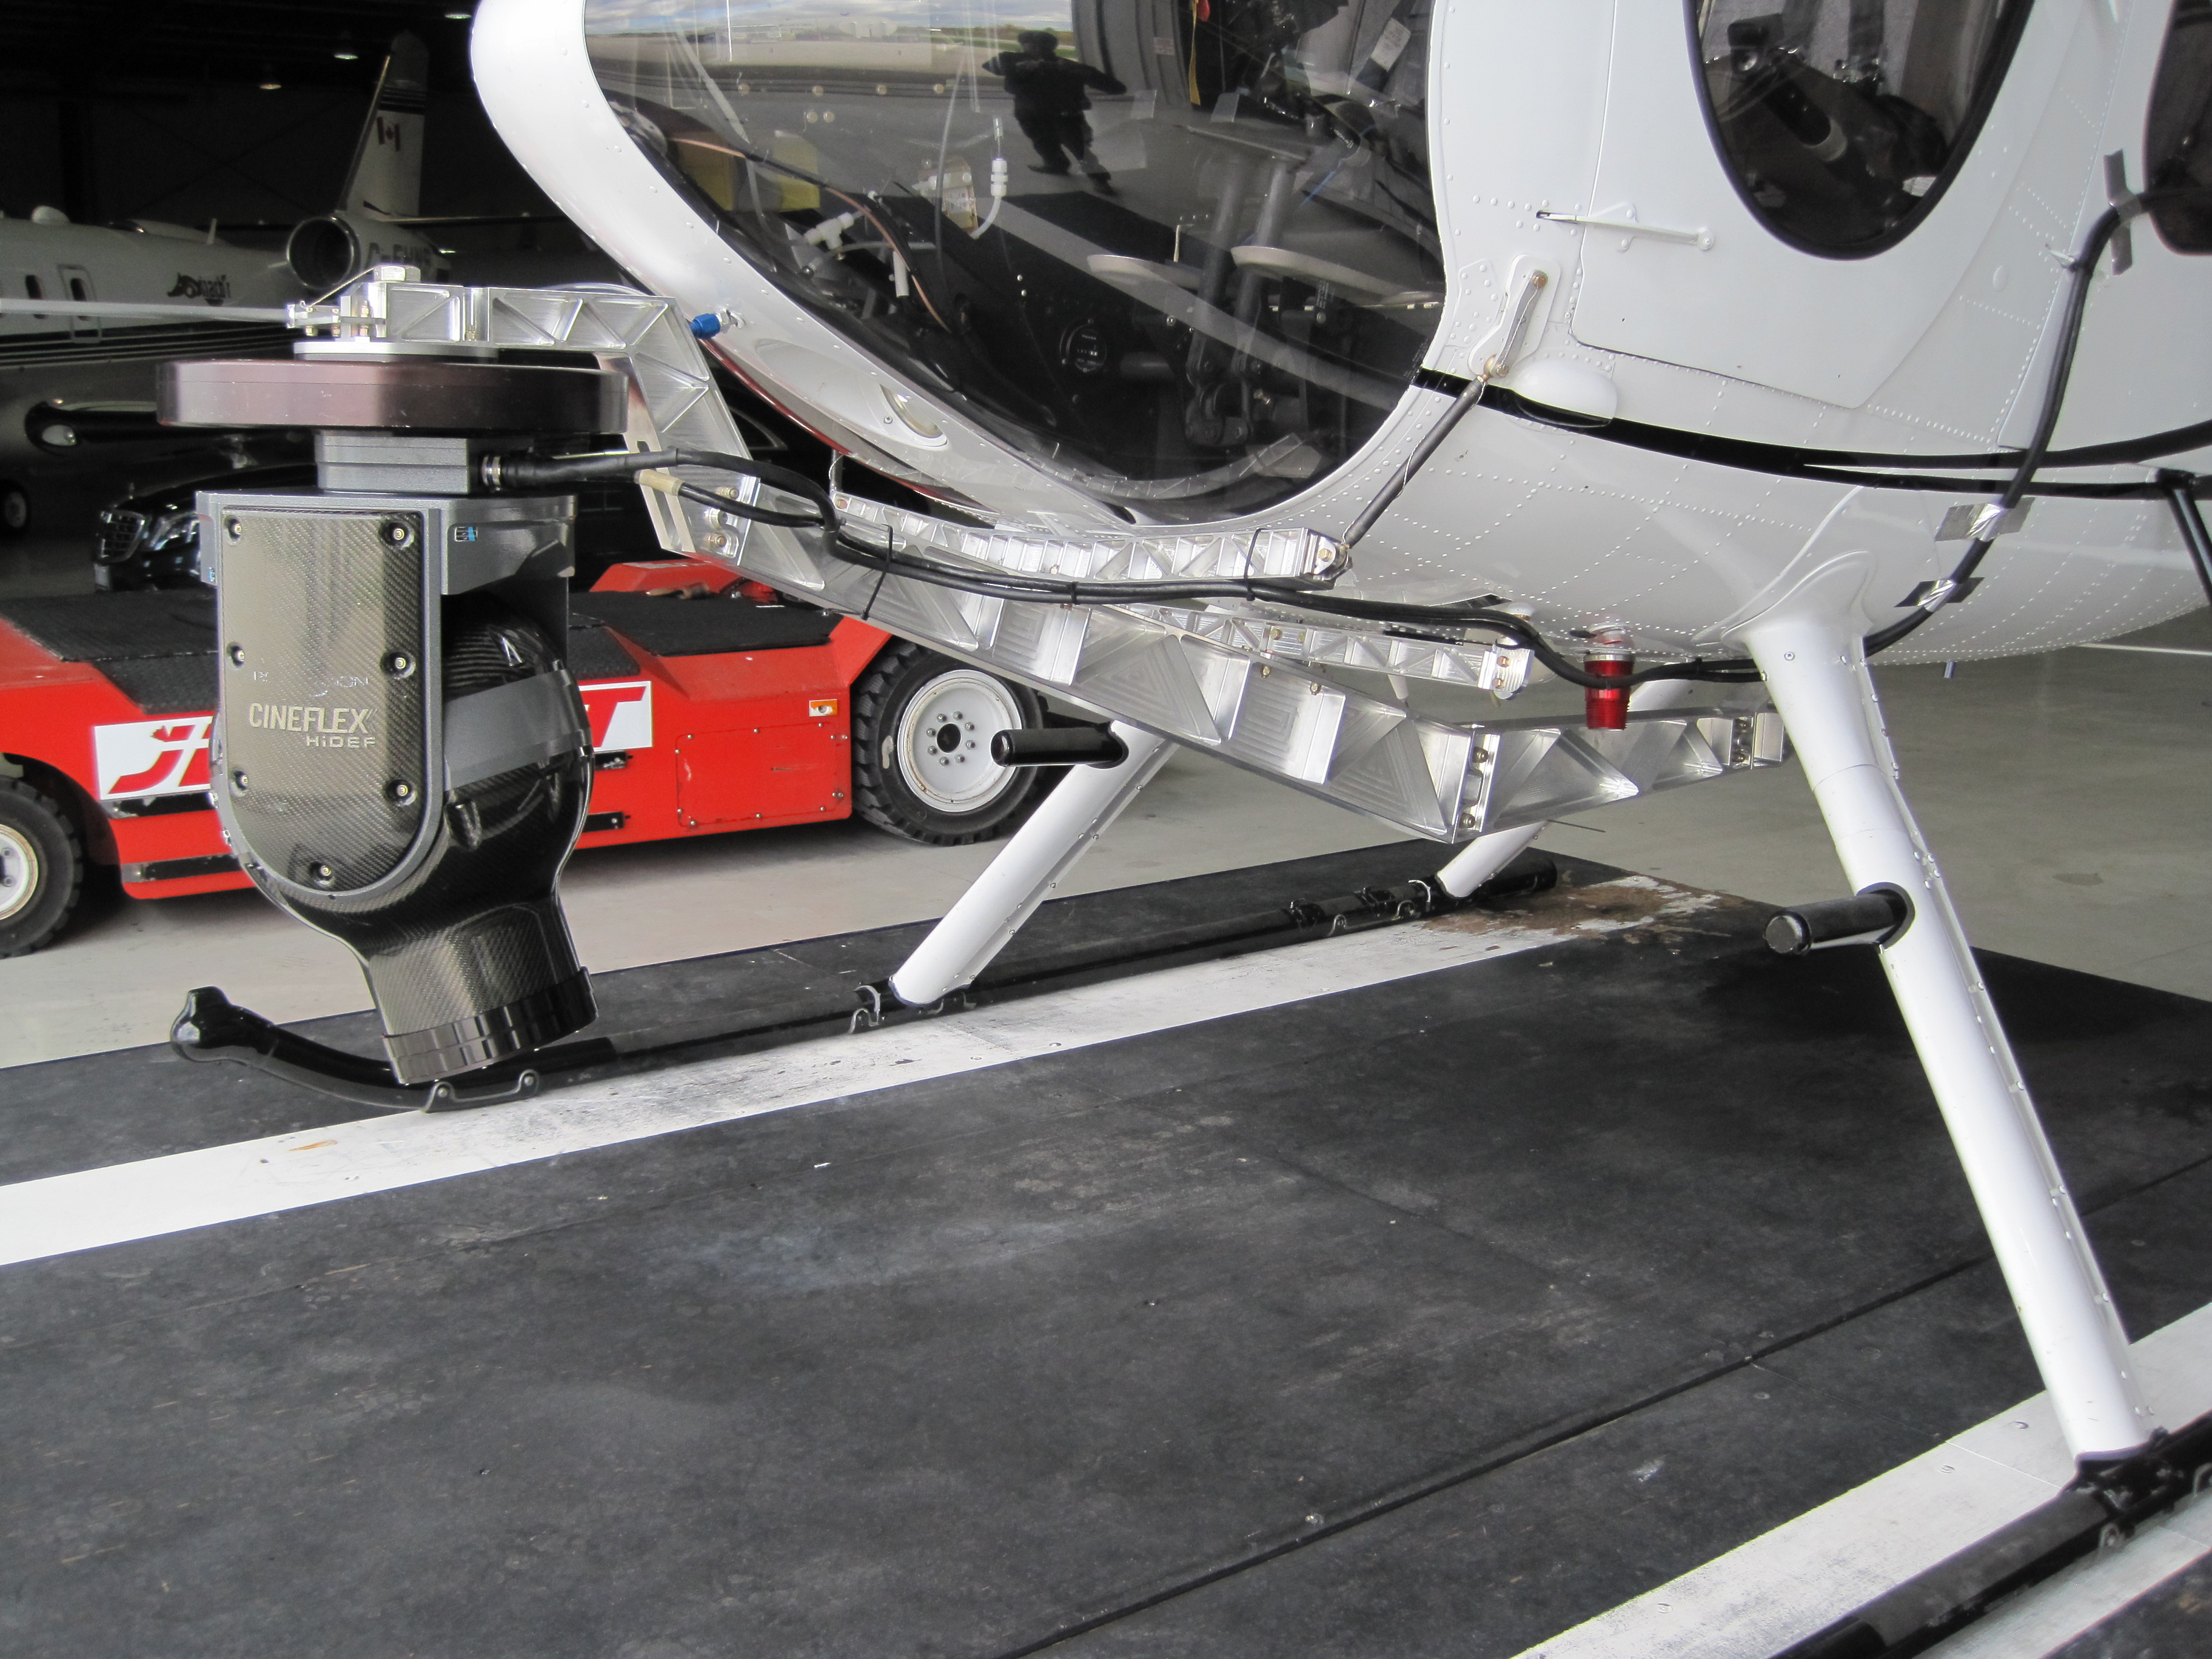 MD500 light fitting on helicopter